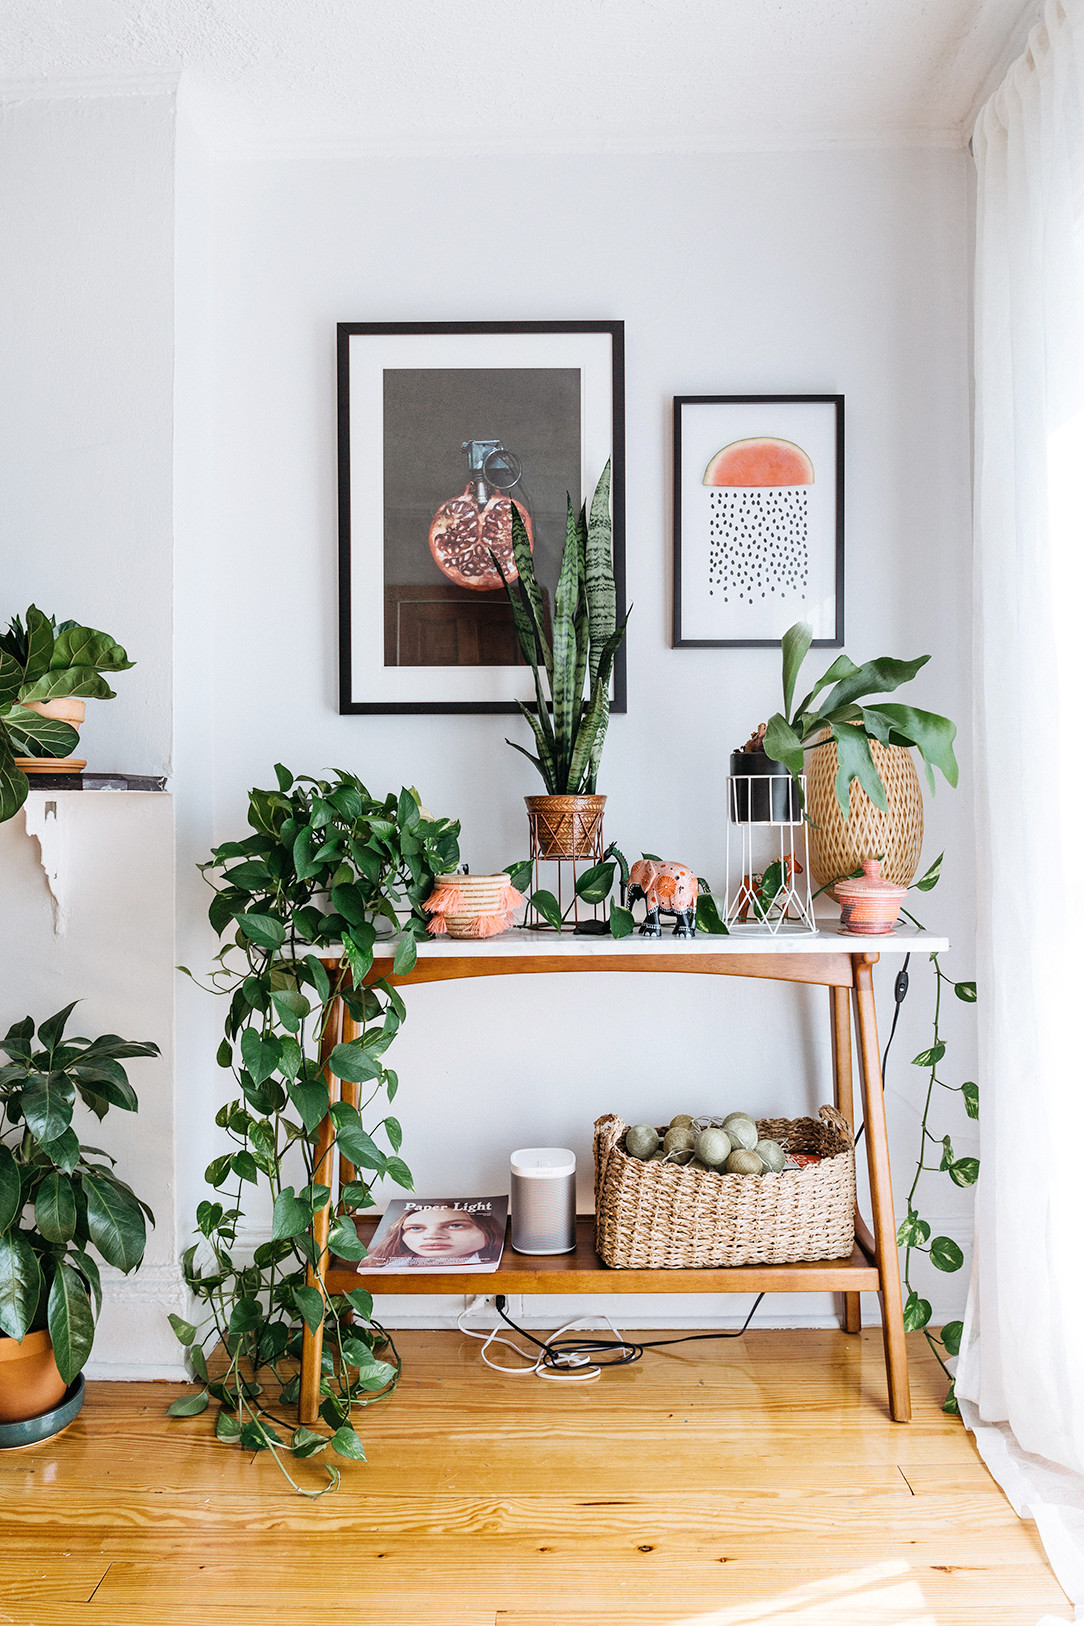 Nicole franzen having a small space may burden you with more storage issues than your nei. Bring Climbing Vines Indoor And Make Your Home Look Like A